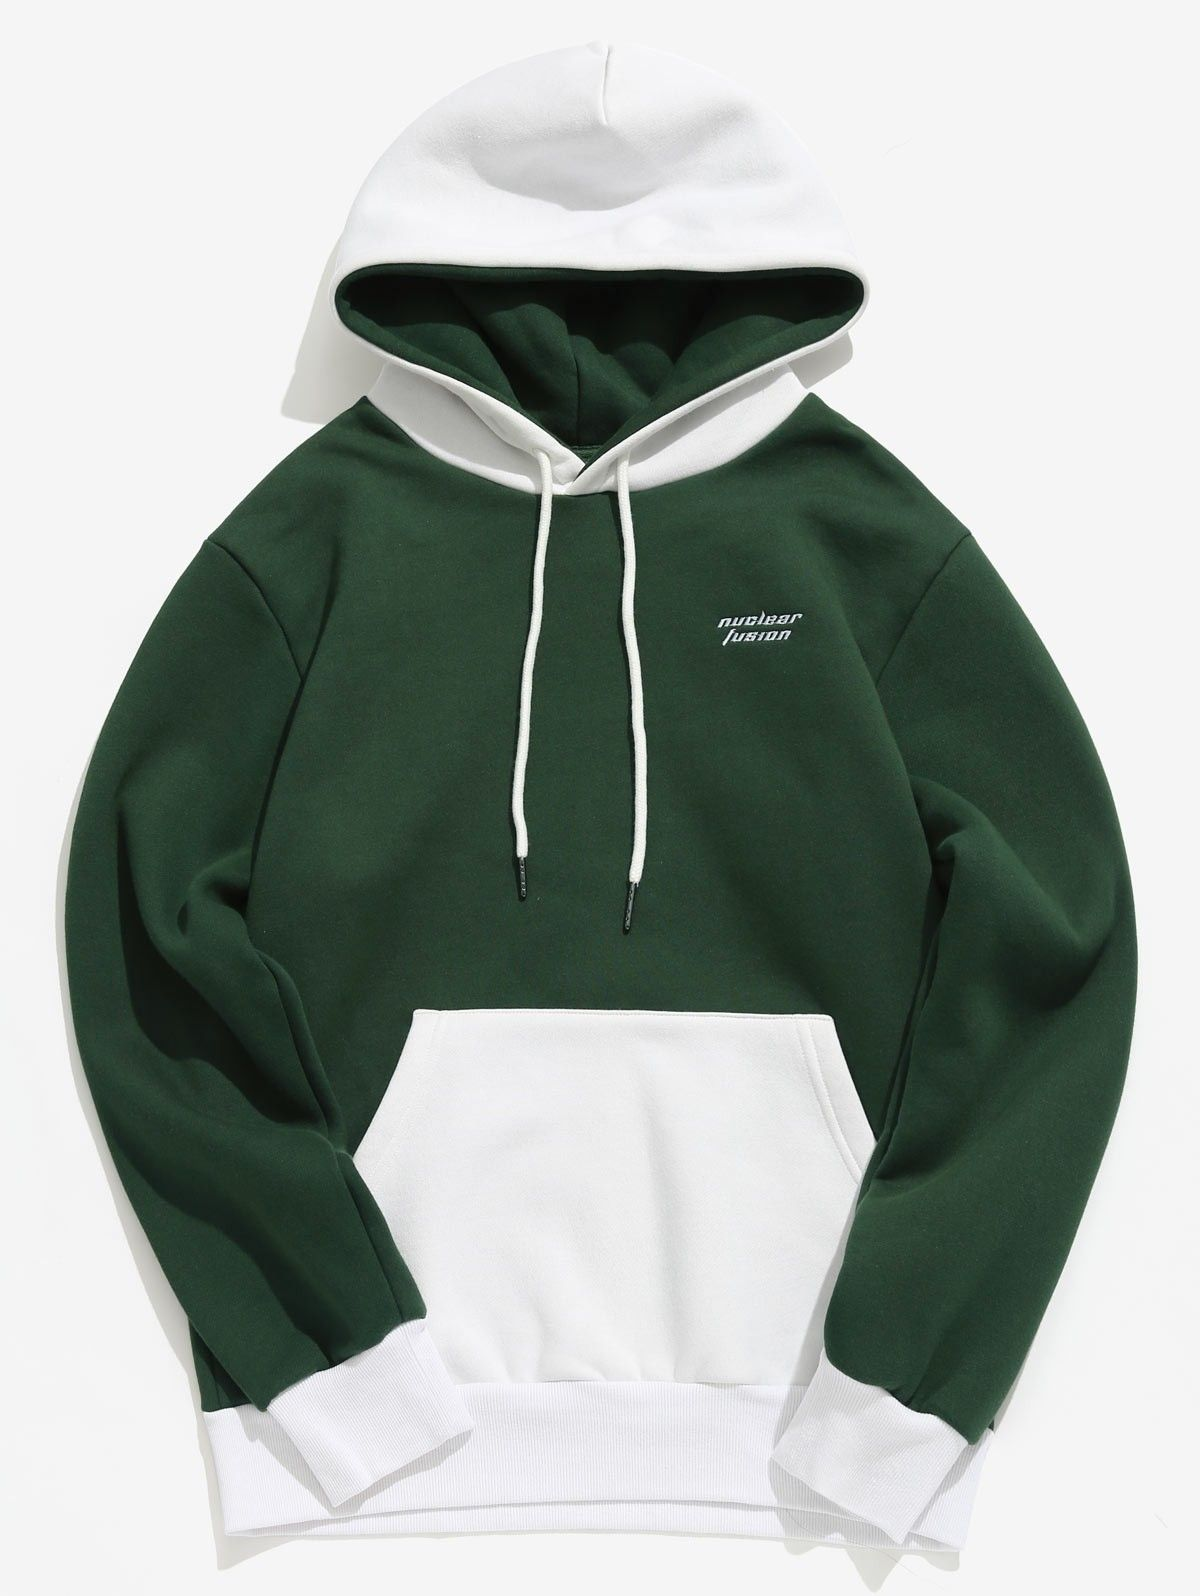 Letter Embroider Contract Color Pullover Hoodie Dark Forest Green 4l53388210 Size M Hoodie Fashion Stylish Hoodies Hoodies [ 1596 x 1200 Pixel ]